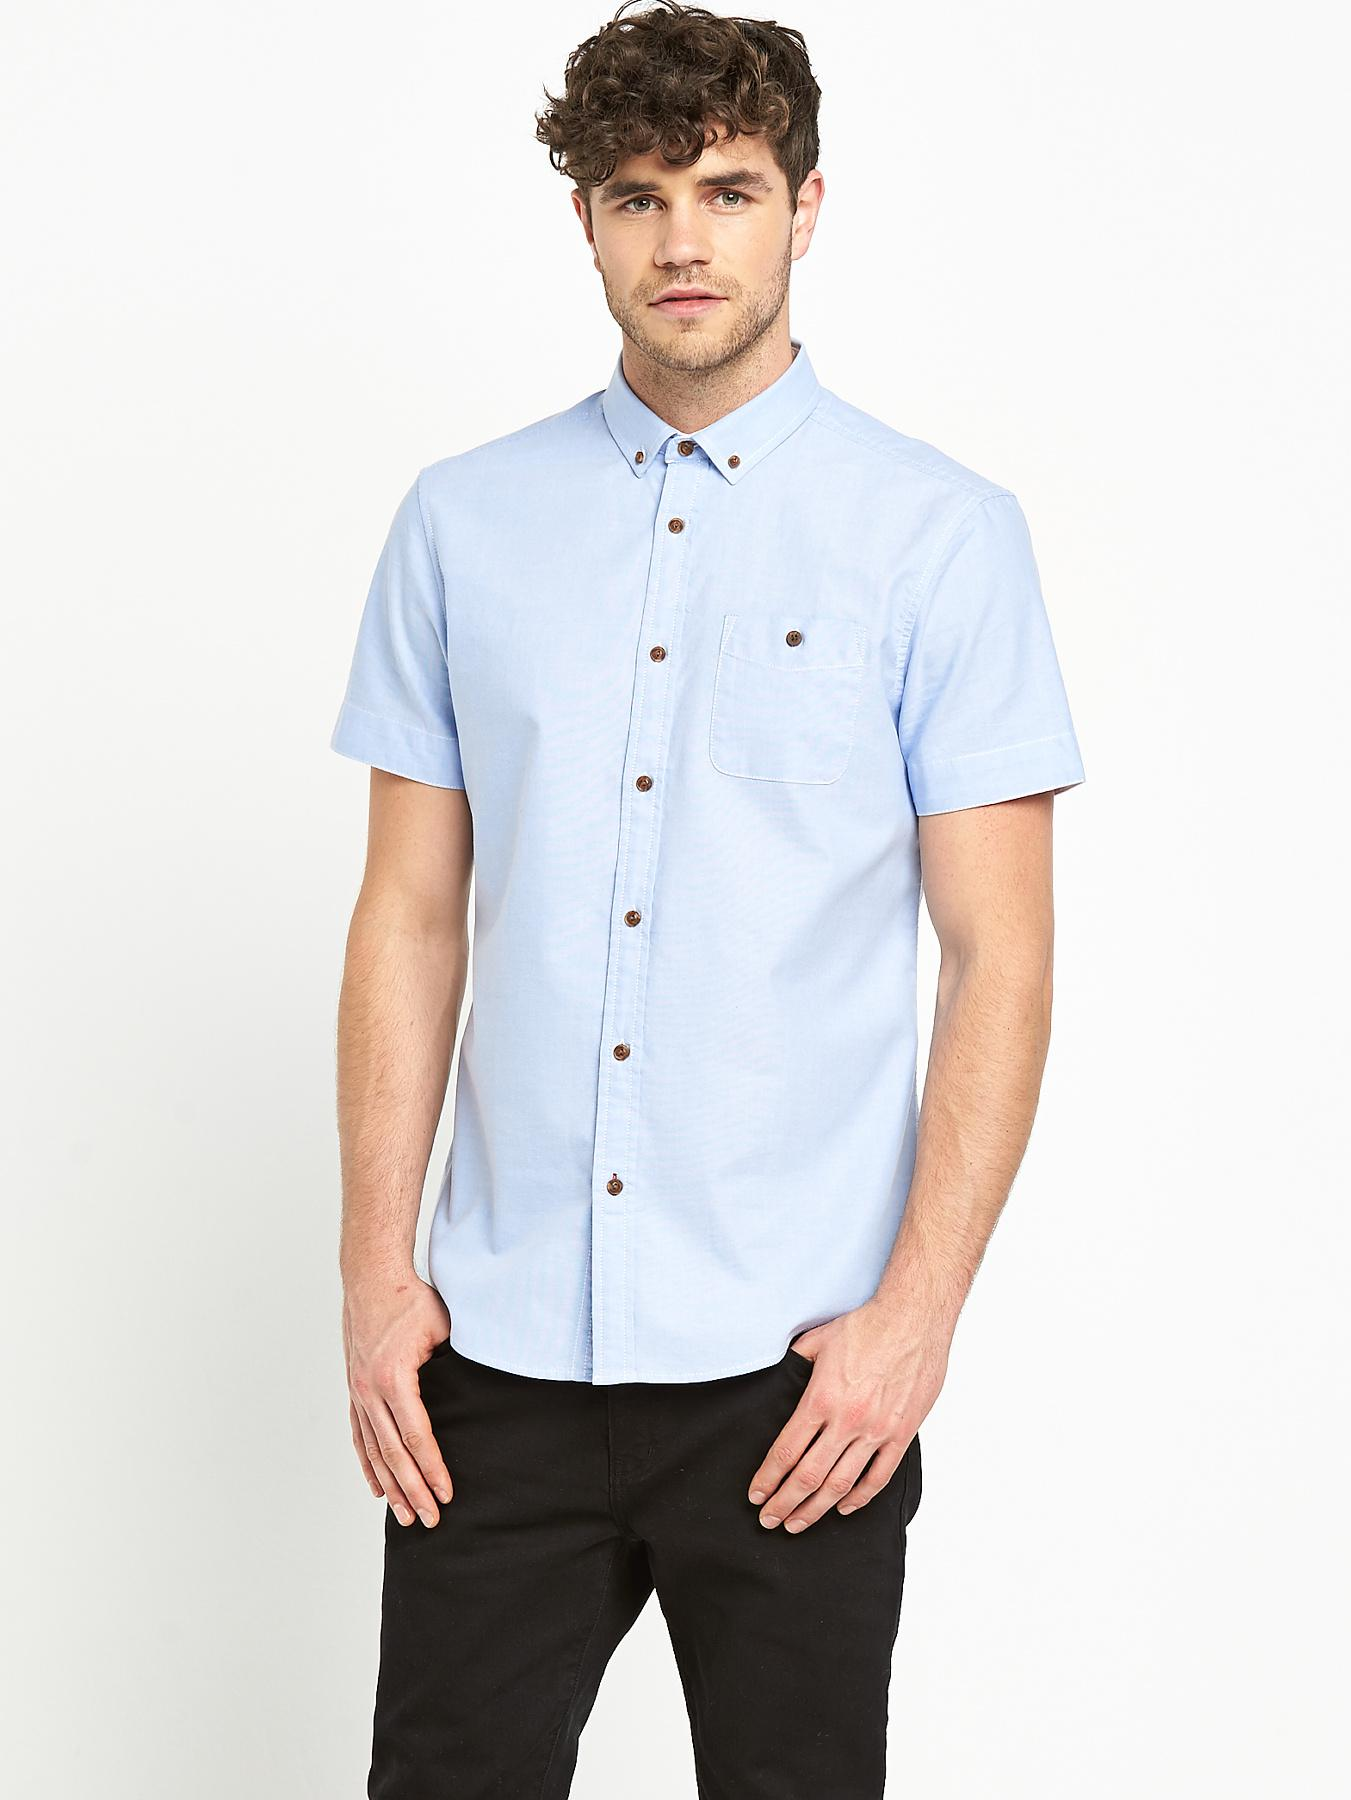 Goodsouls Mens Short Sleeve Blue Oxford Shirt - Blue, Blue